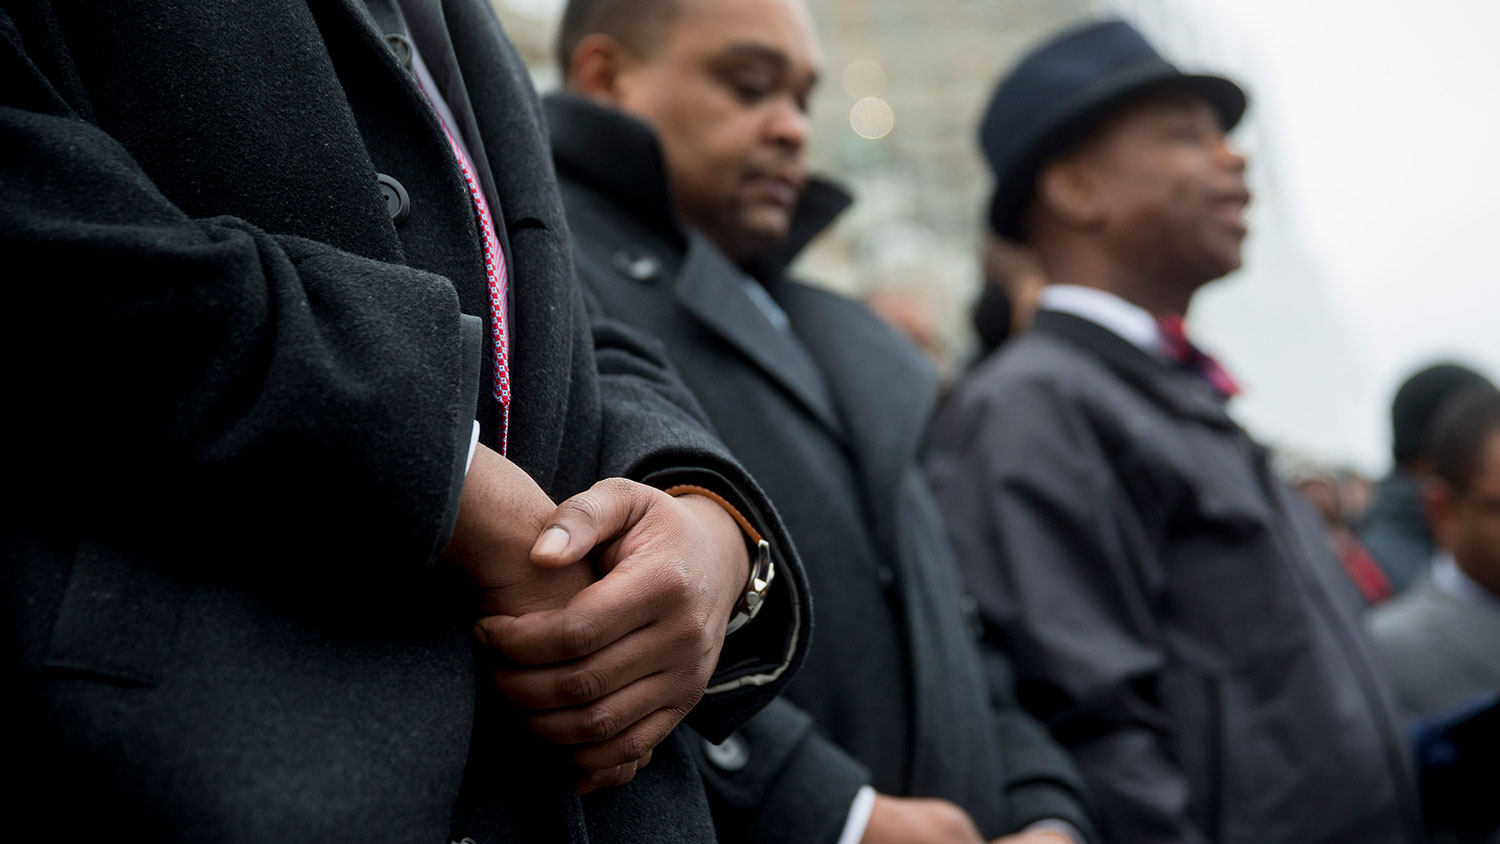 Congressional staff members hold their hands while listening to a prayer by Senate Chaplain Dr. Barry Black, right, during a protest on the U.S. Capitol steps in Washington on Dec. 11, 2014.